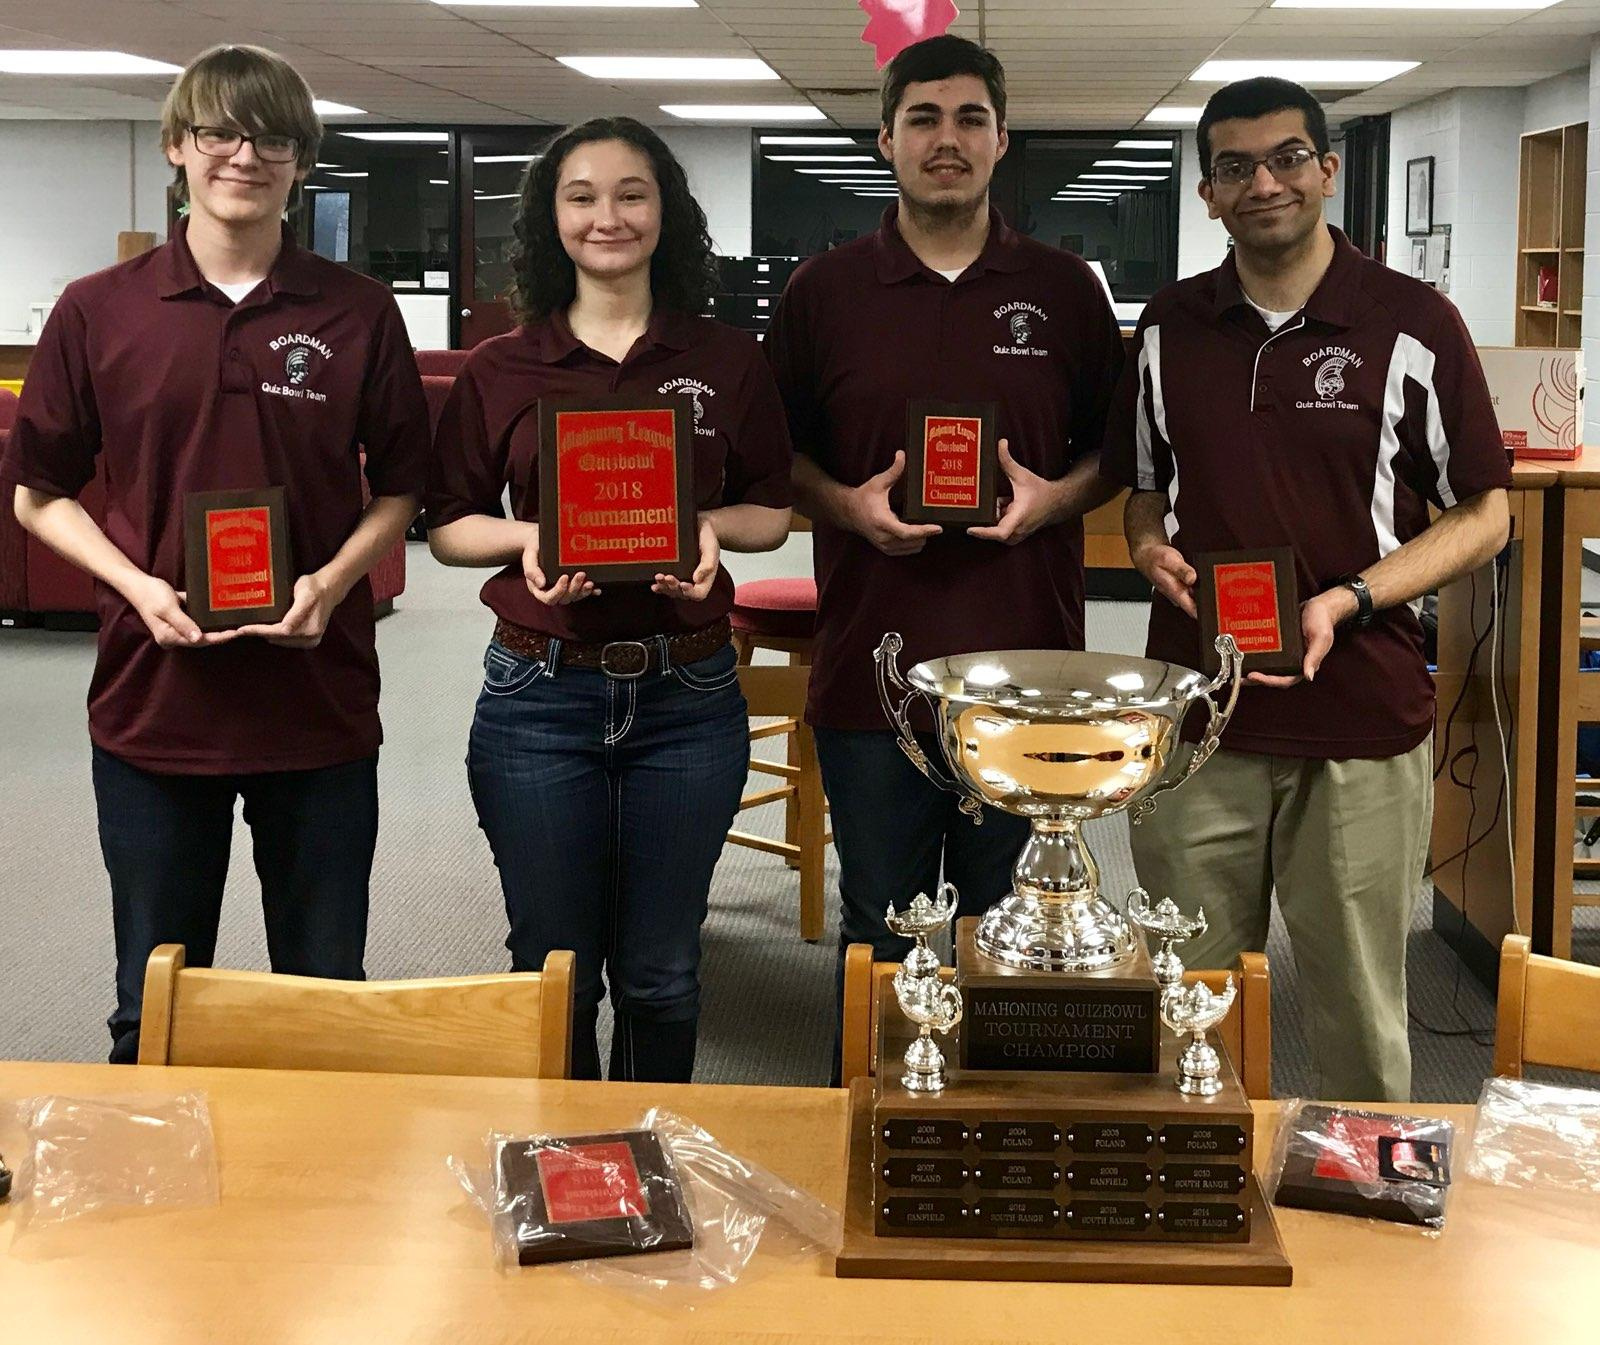 quiz Bowl Mahoning League Champs 2018